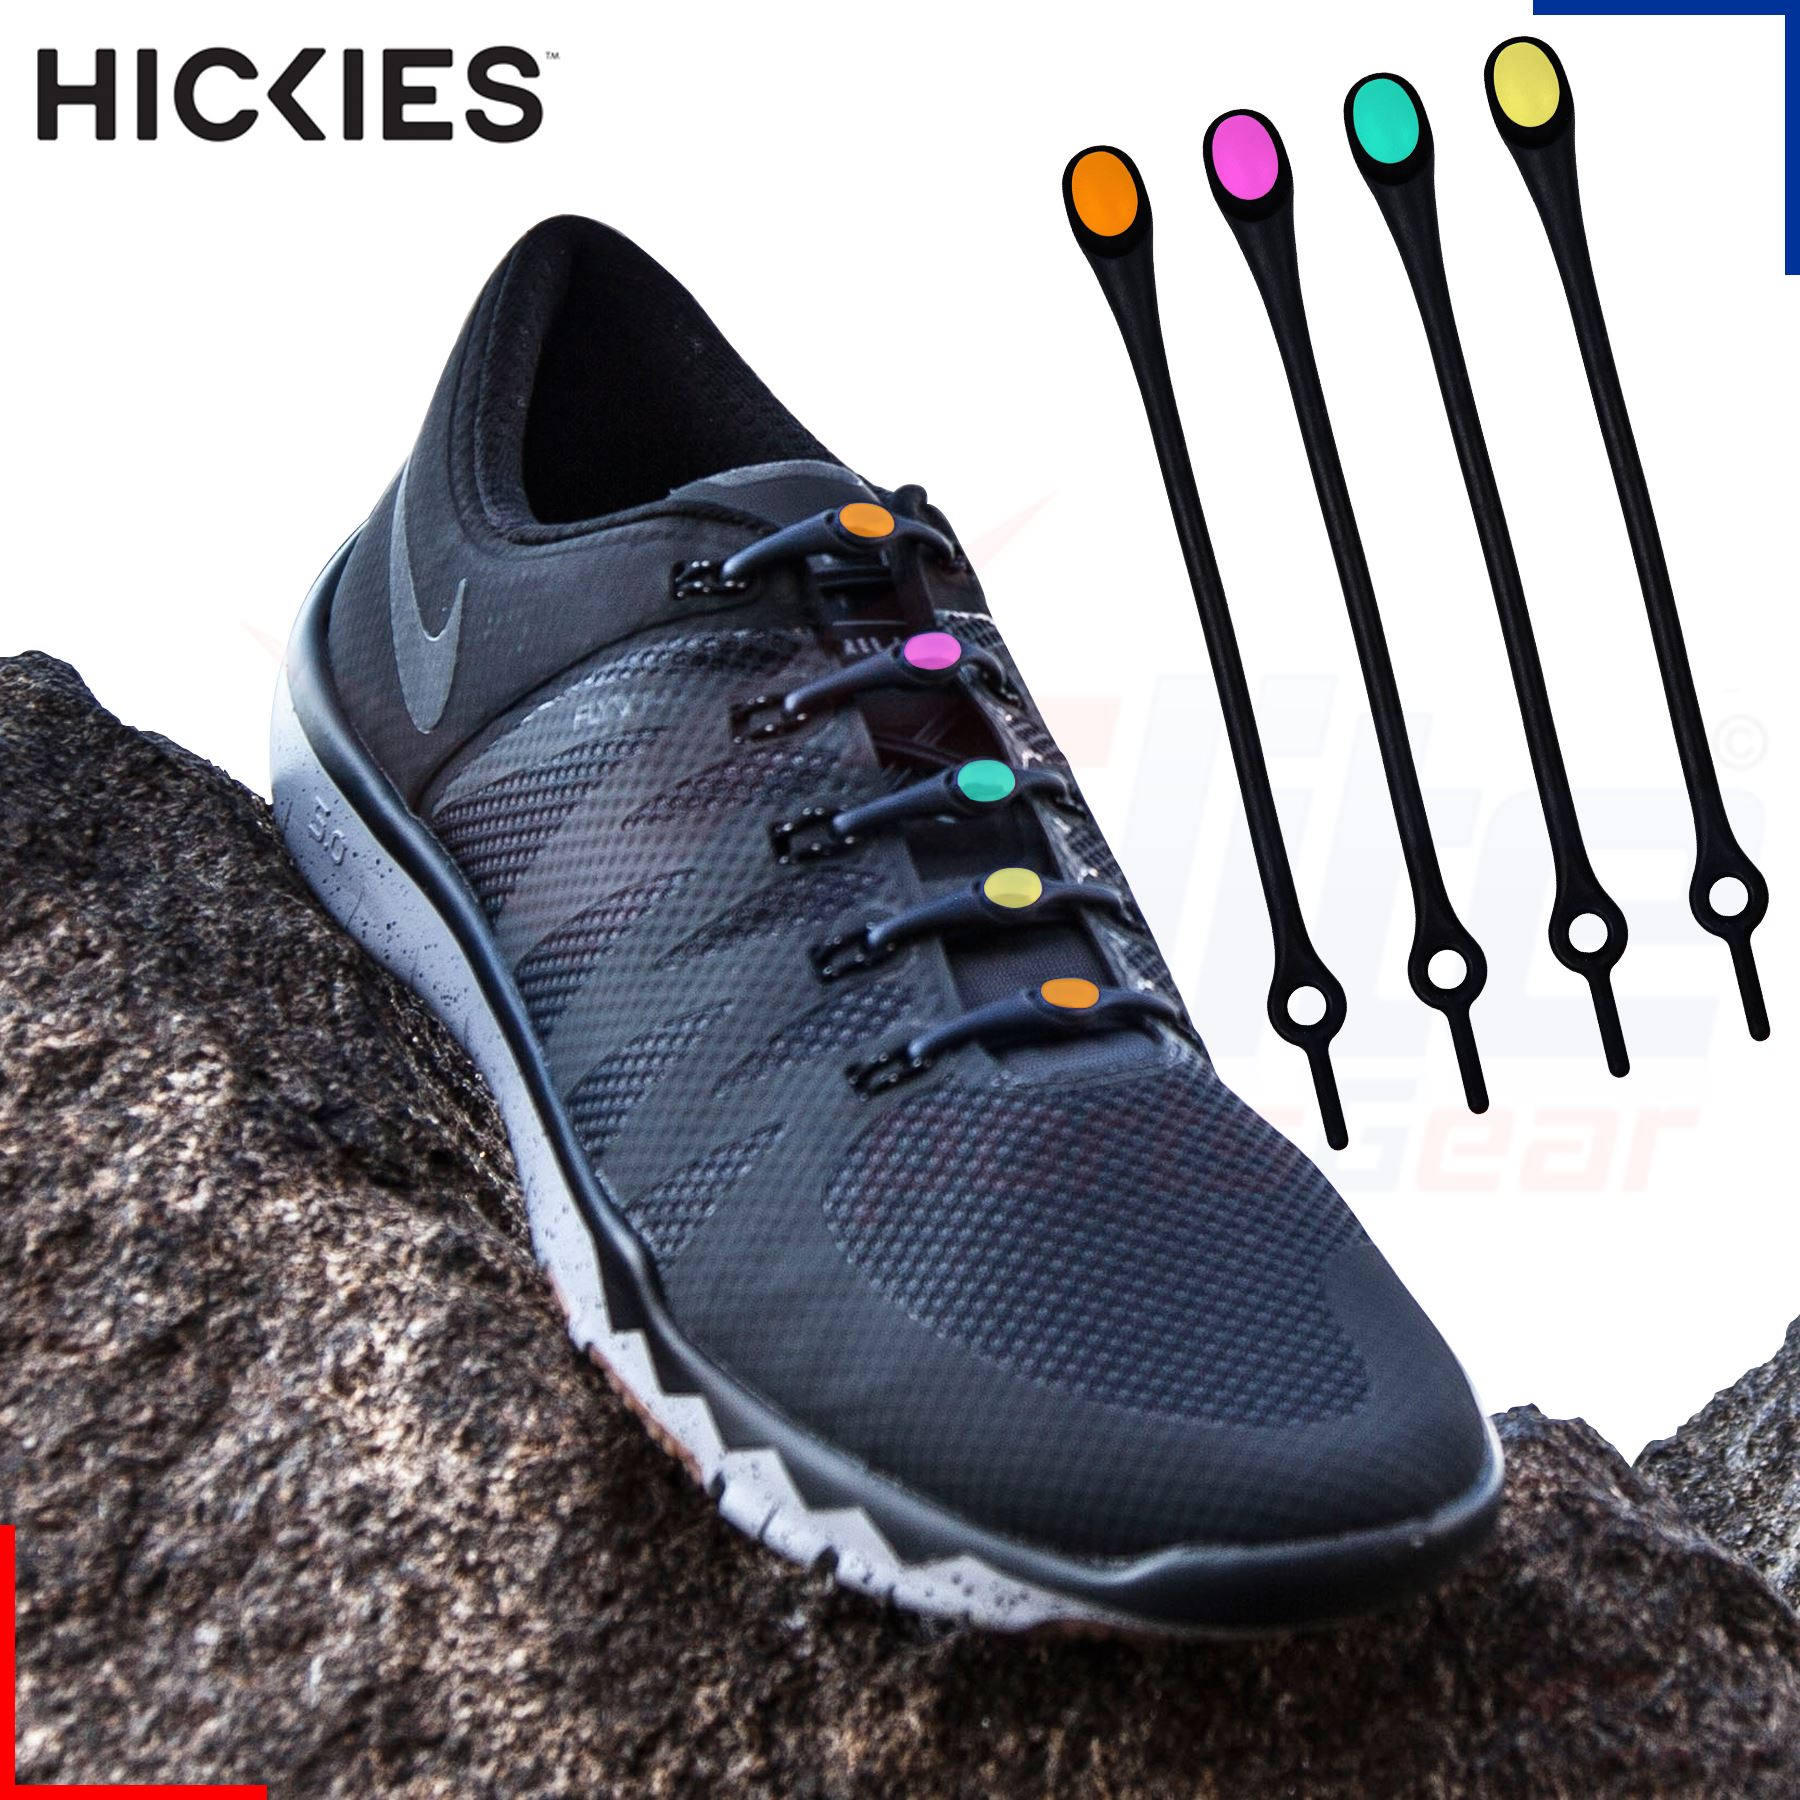 Hickies lacing system.jpg